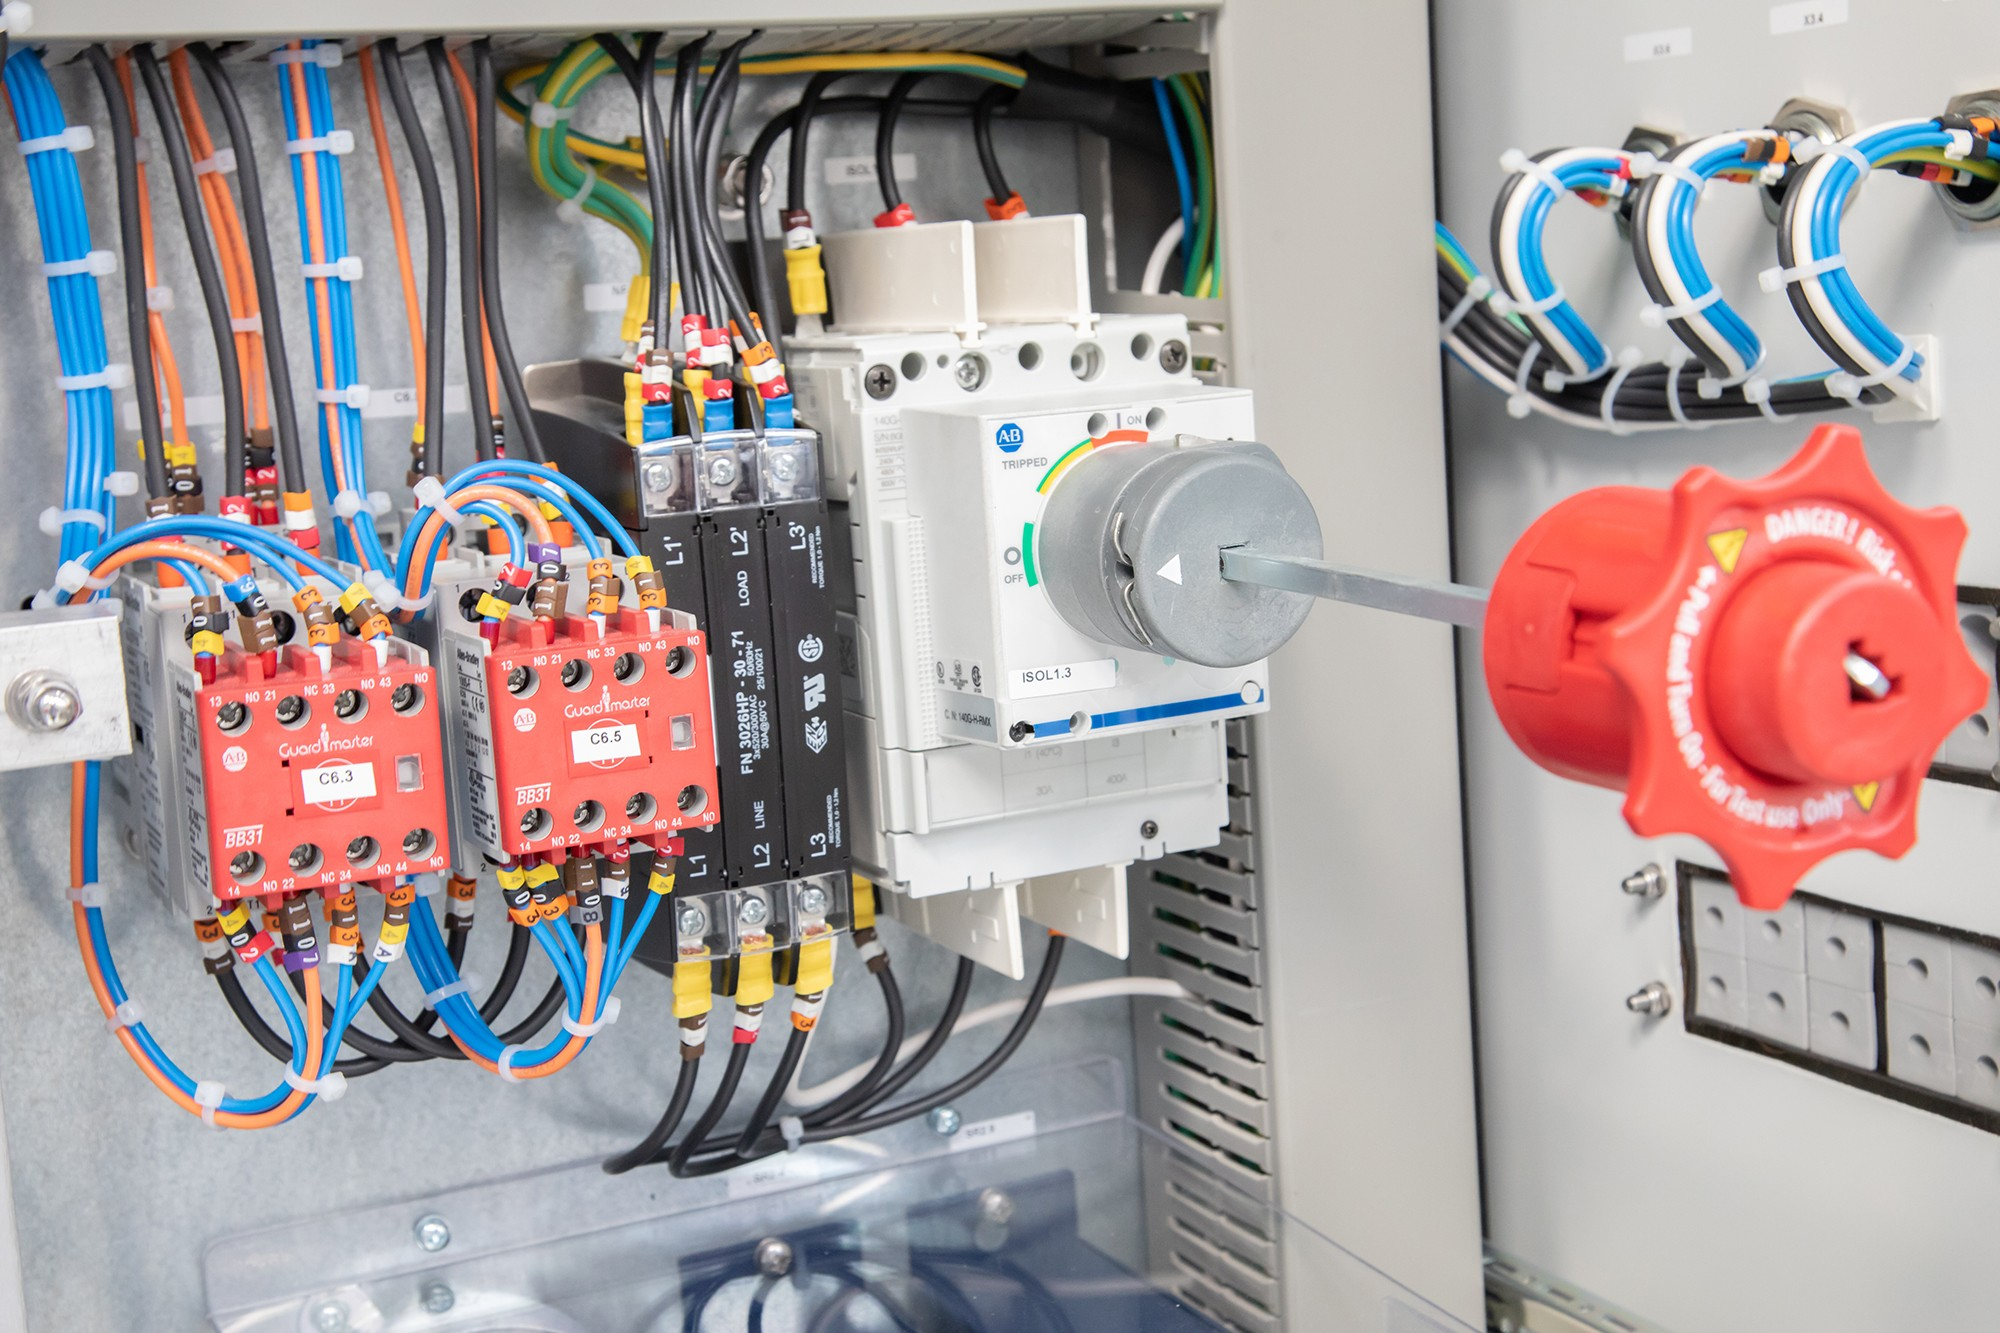 Build quality & test » pp 107 » PP Control & Automation